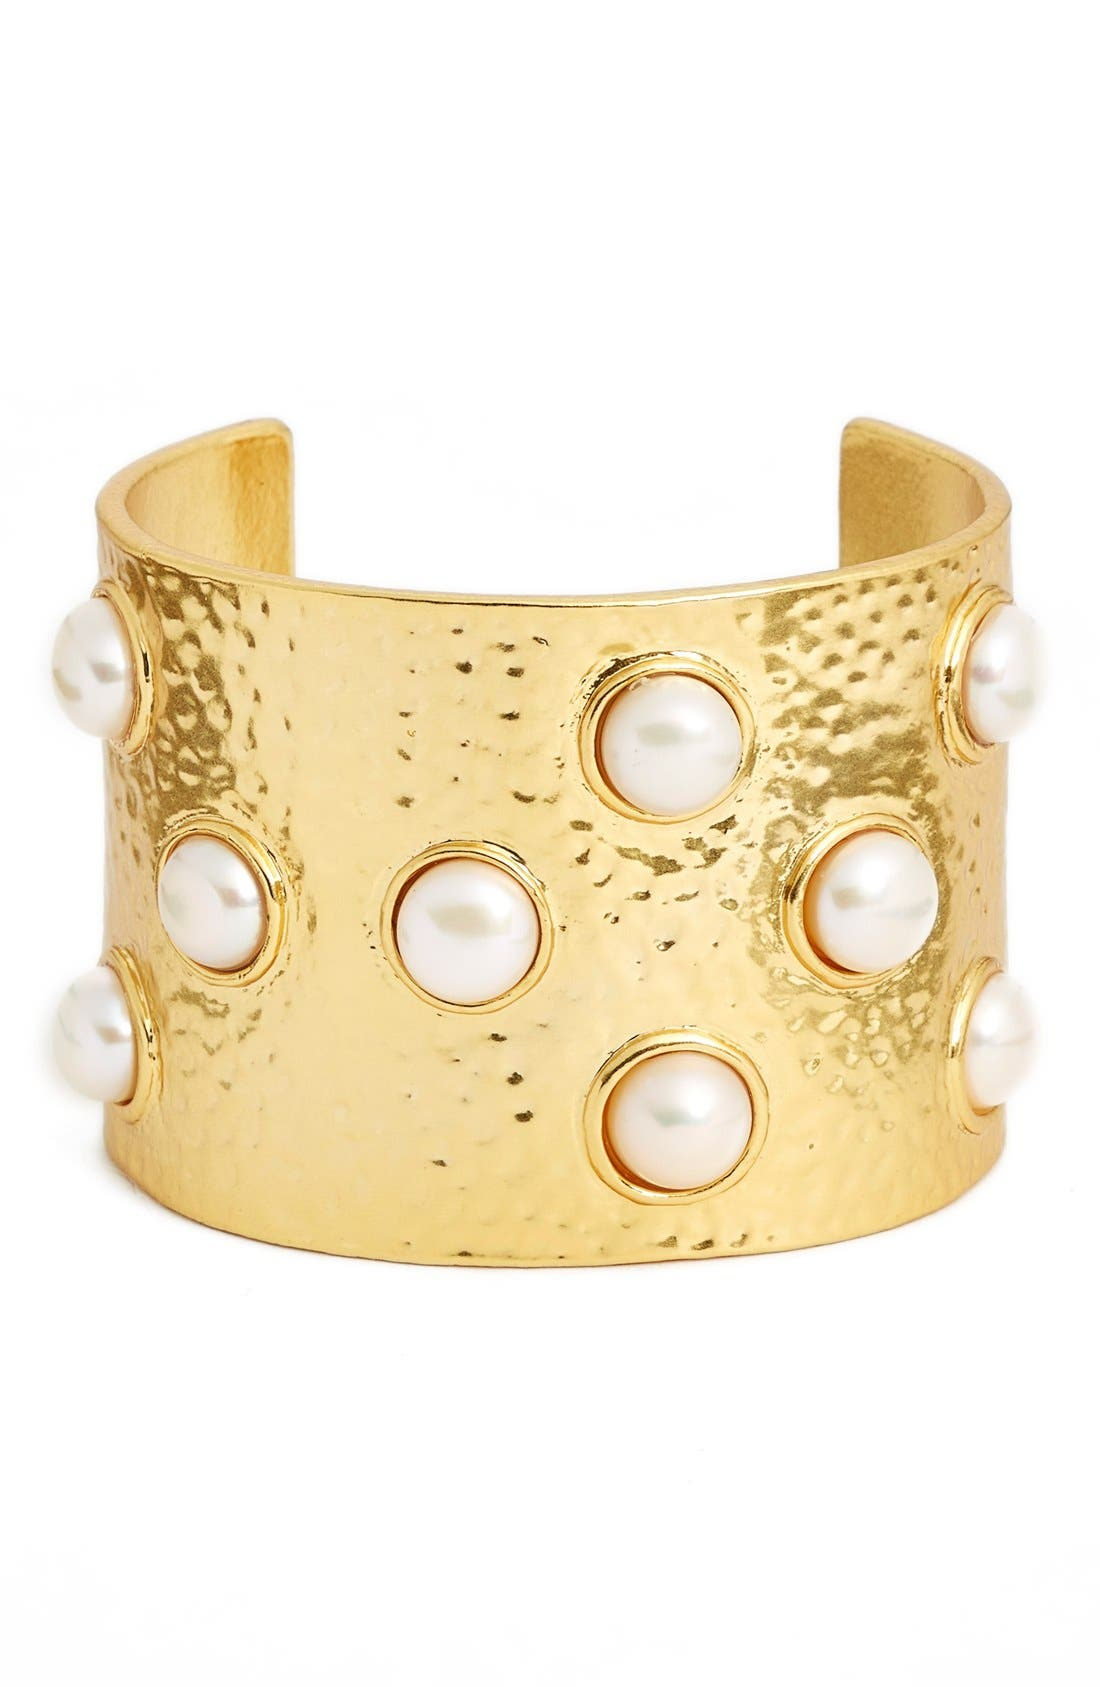 KARINE SULTAN, Hammered Imitation Pearl Cuff, Main thumbnail 1, color, GOLD